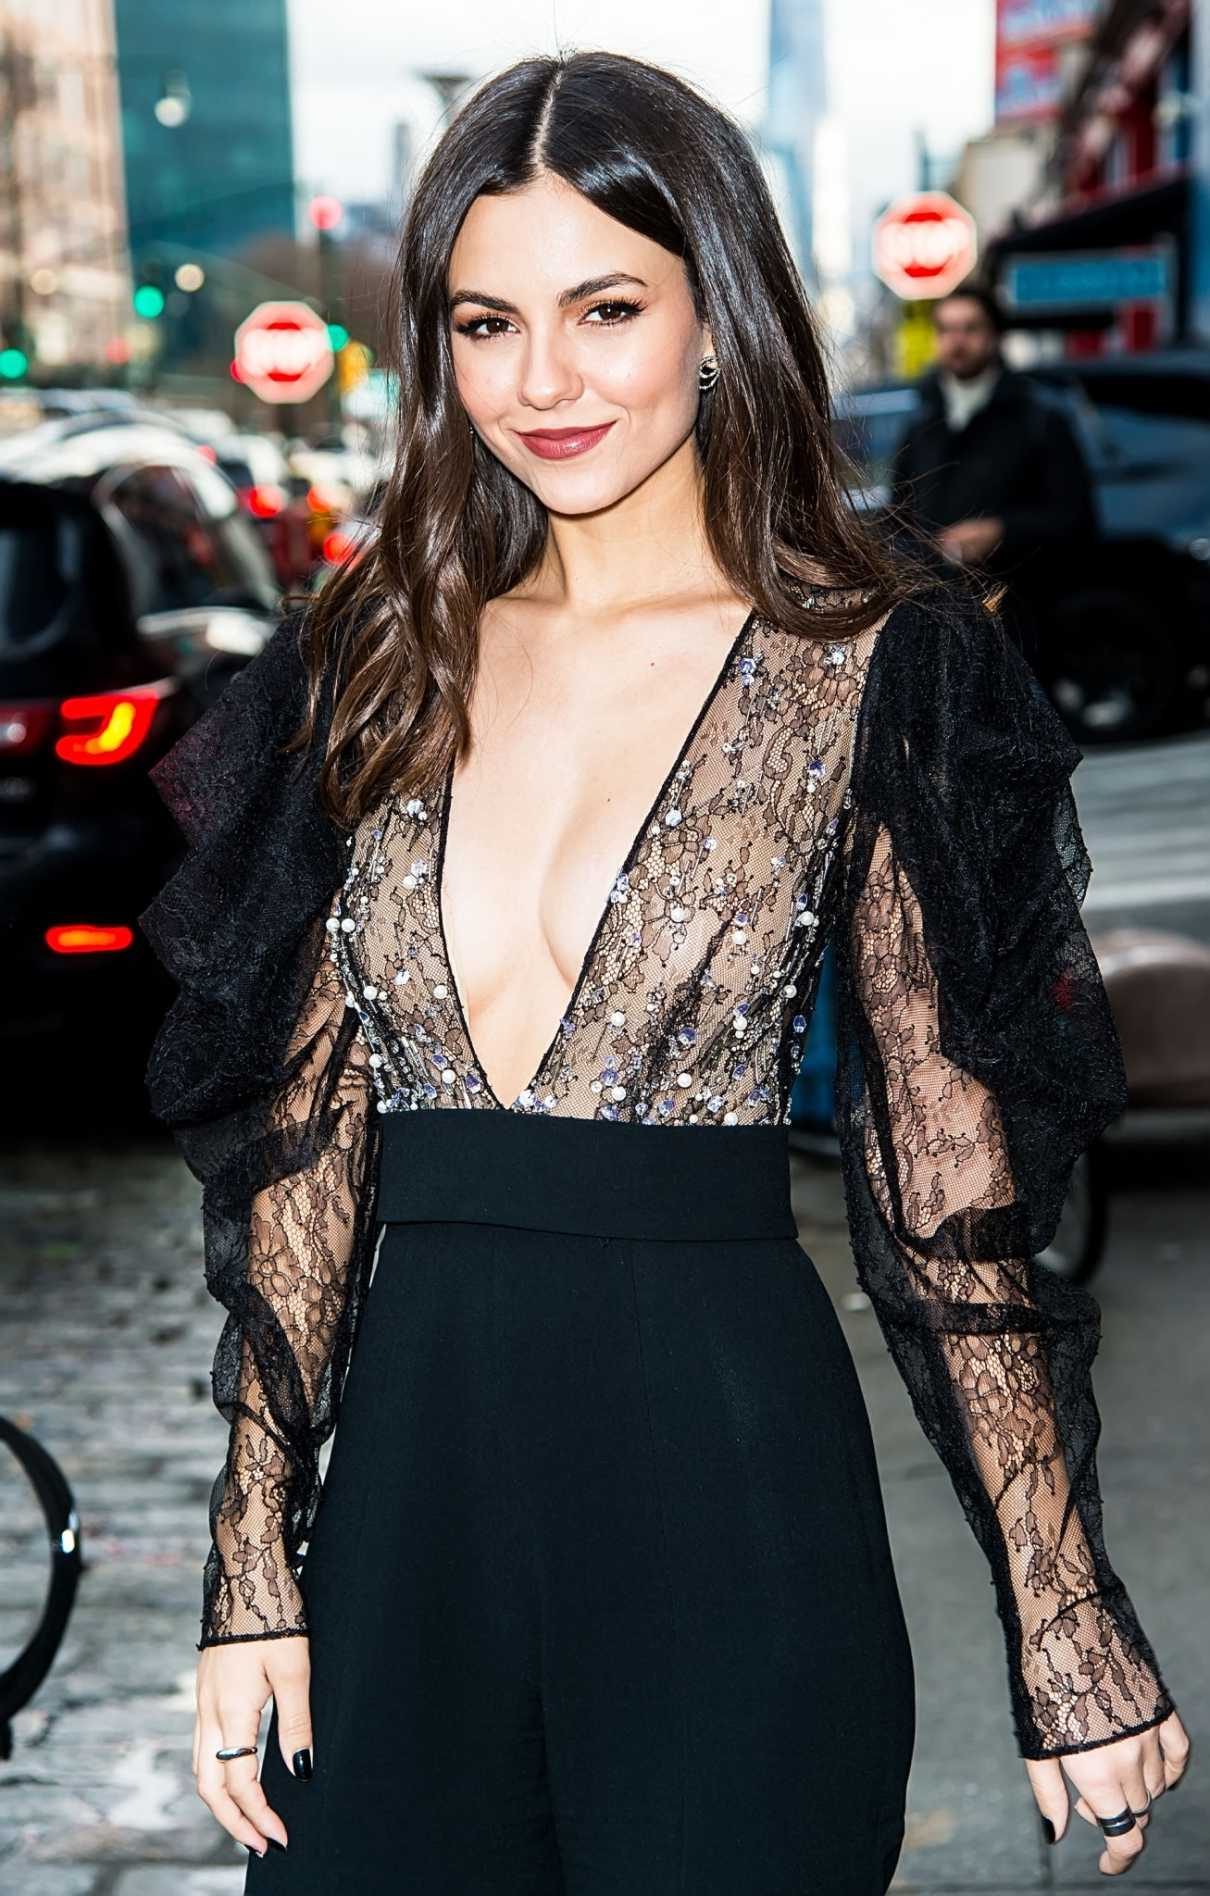 Victoria Justice in a Black See-Through Blouse Arrives at